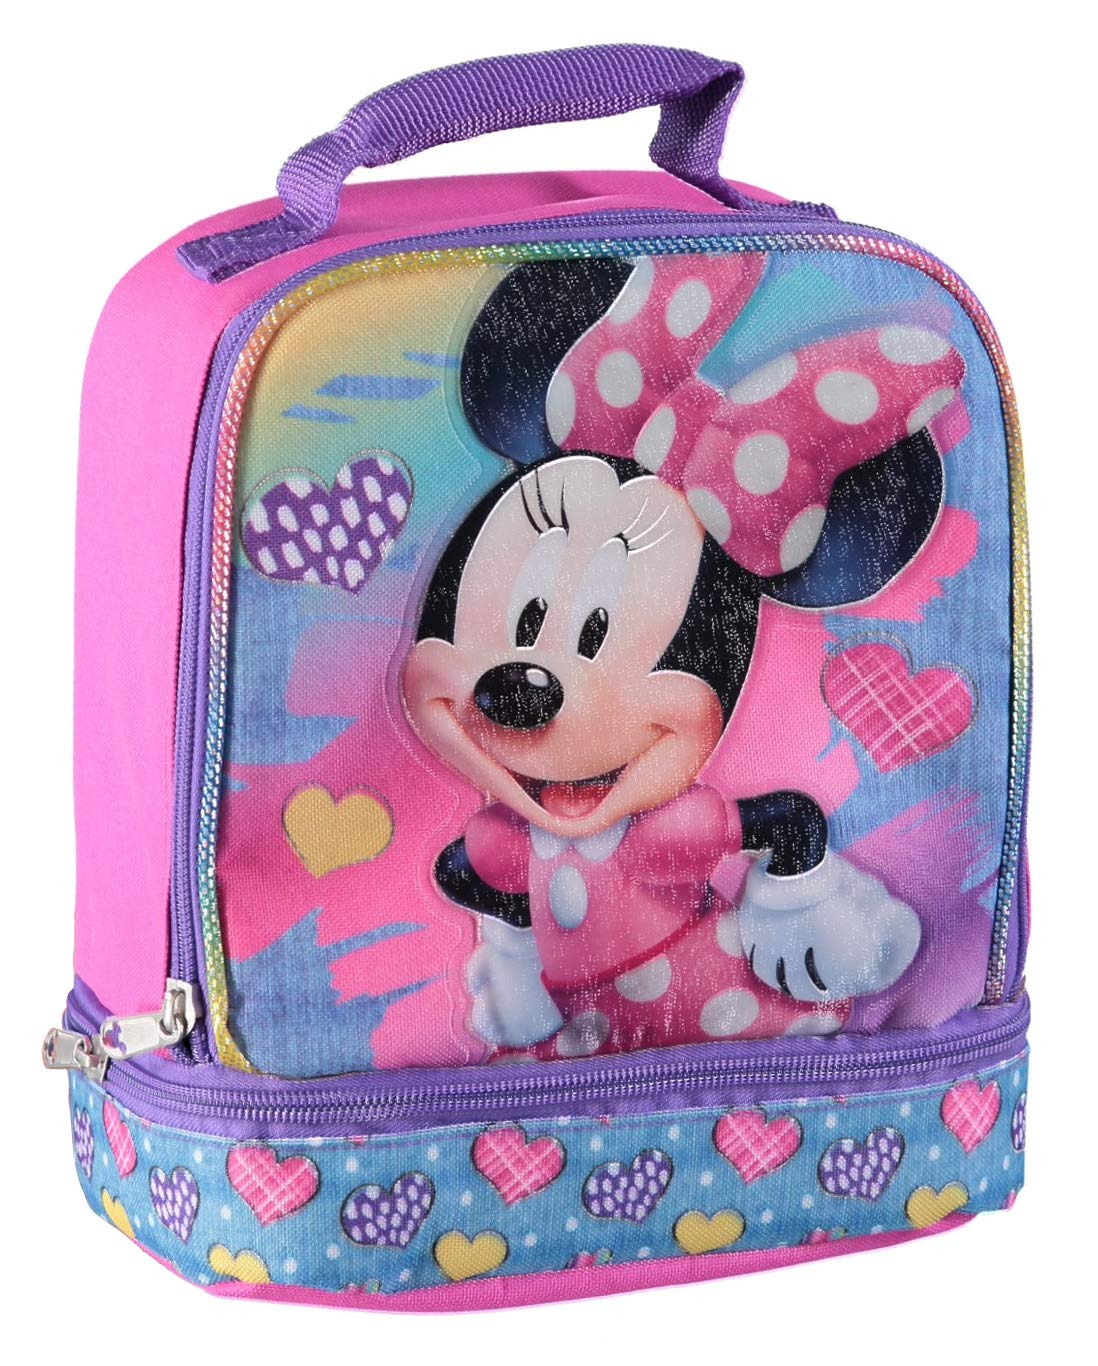 Disney MN29130-SC-BK00 Minnie Mouse Dual Compartment Ears Insulated Lunch Kit, One Size, Black